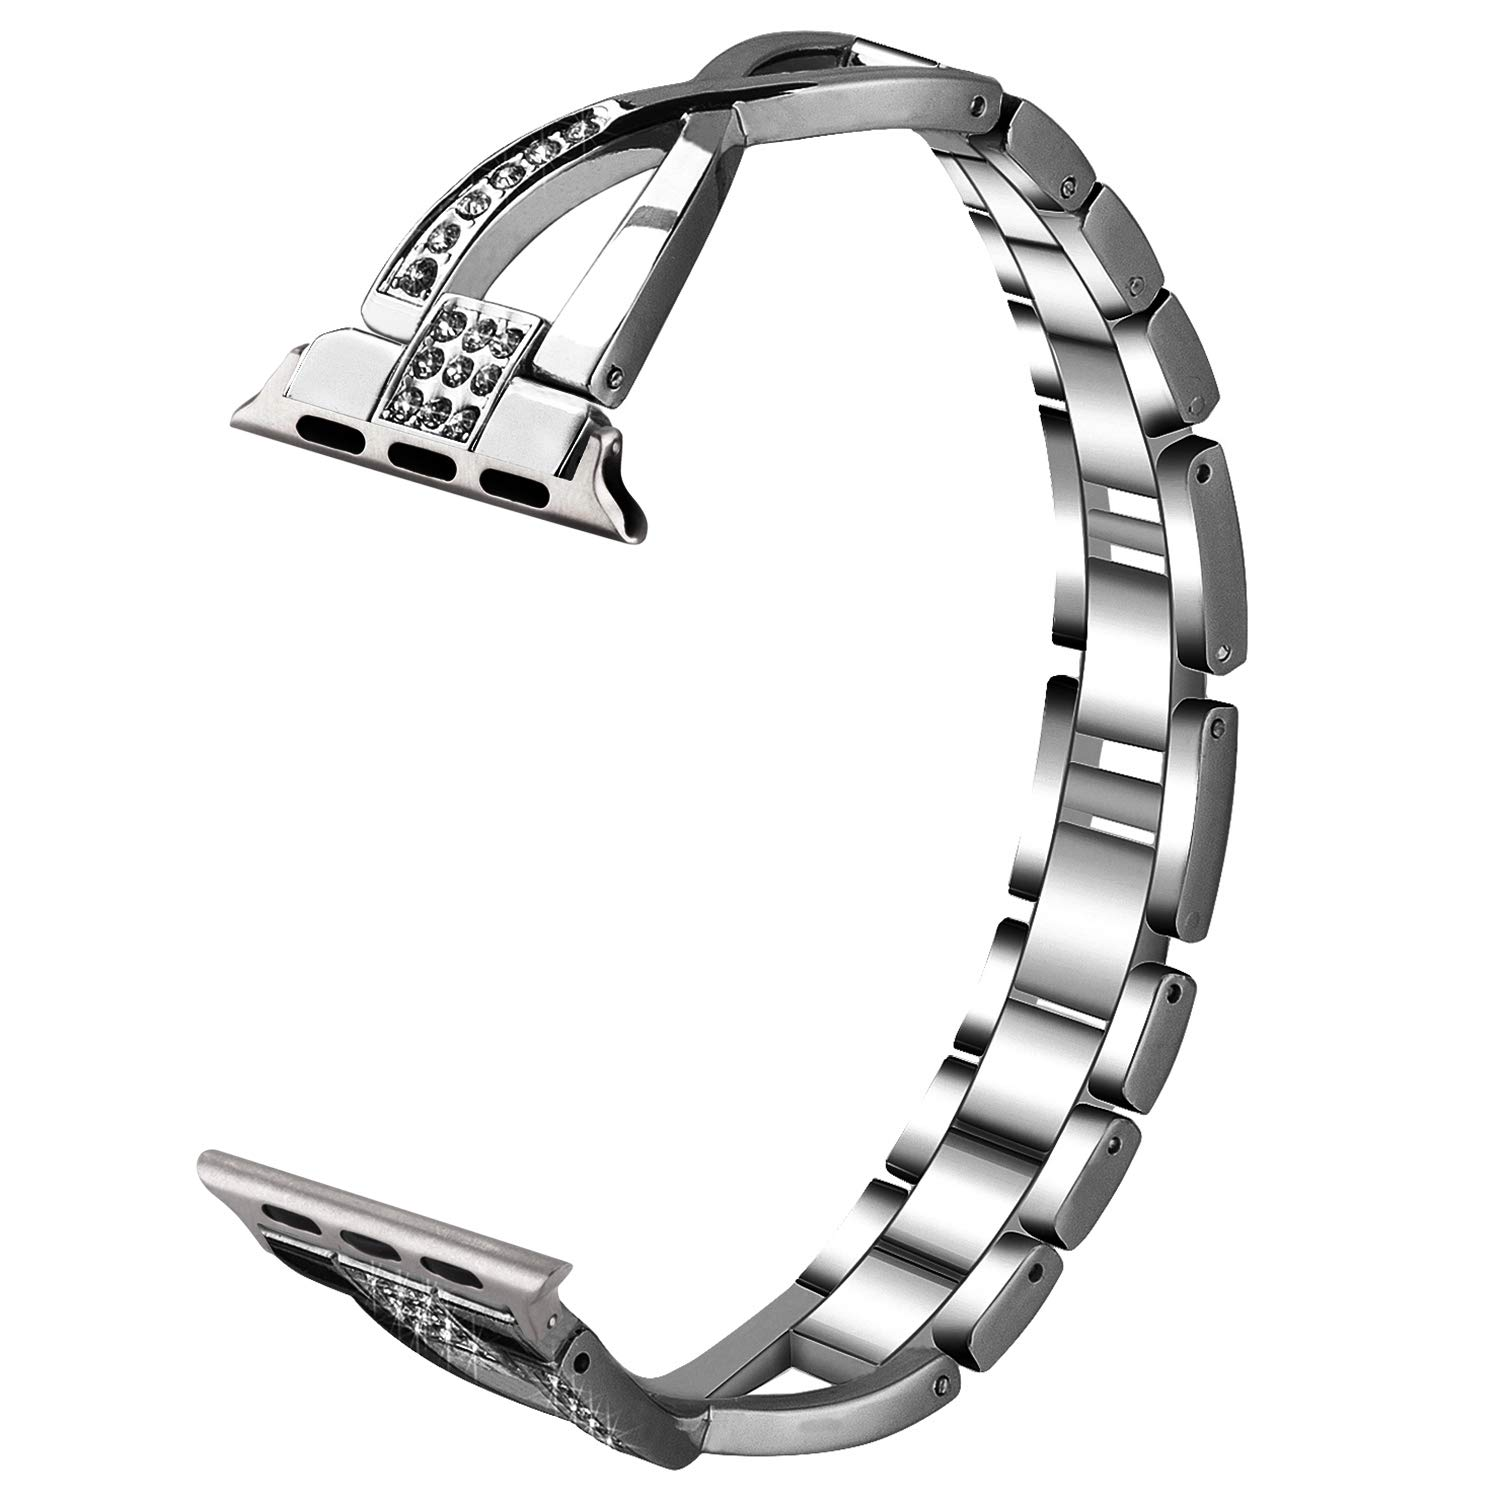 VIQIV Stainless Steel Bling Bands for Apple Watch 38mm 42mm Iwatch Series 3, Series 2, Series 1, Diamond Rhinestone Bracelet Wristband Strap for Women